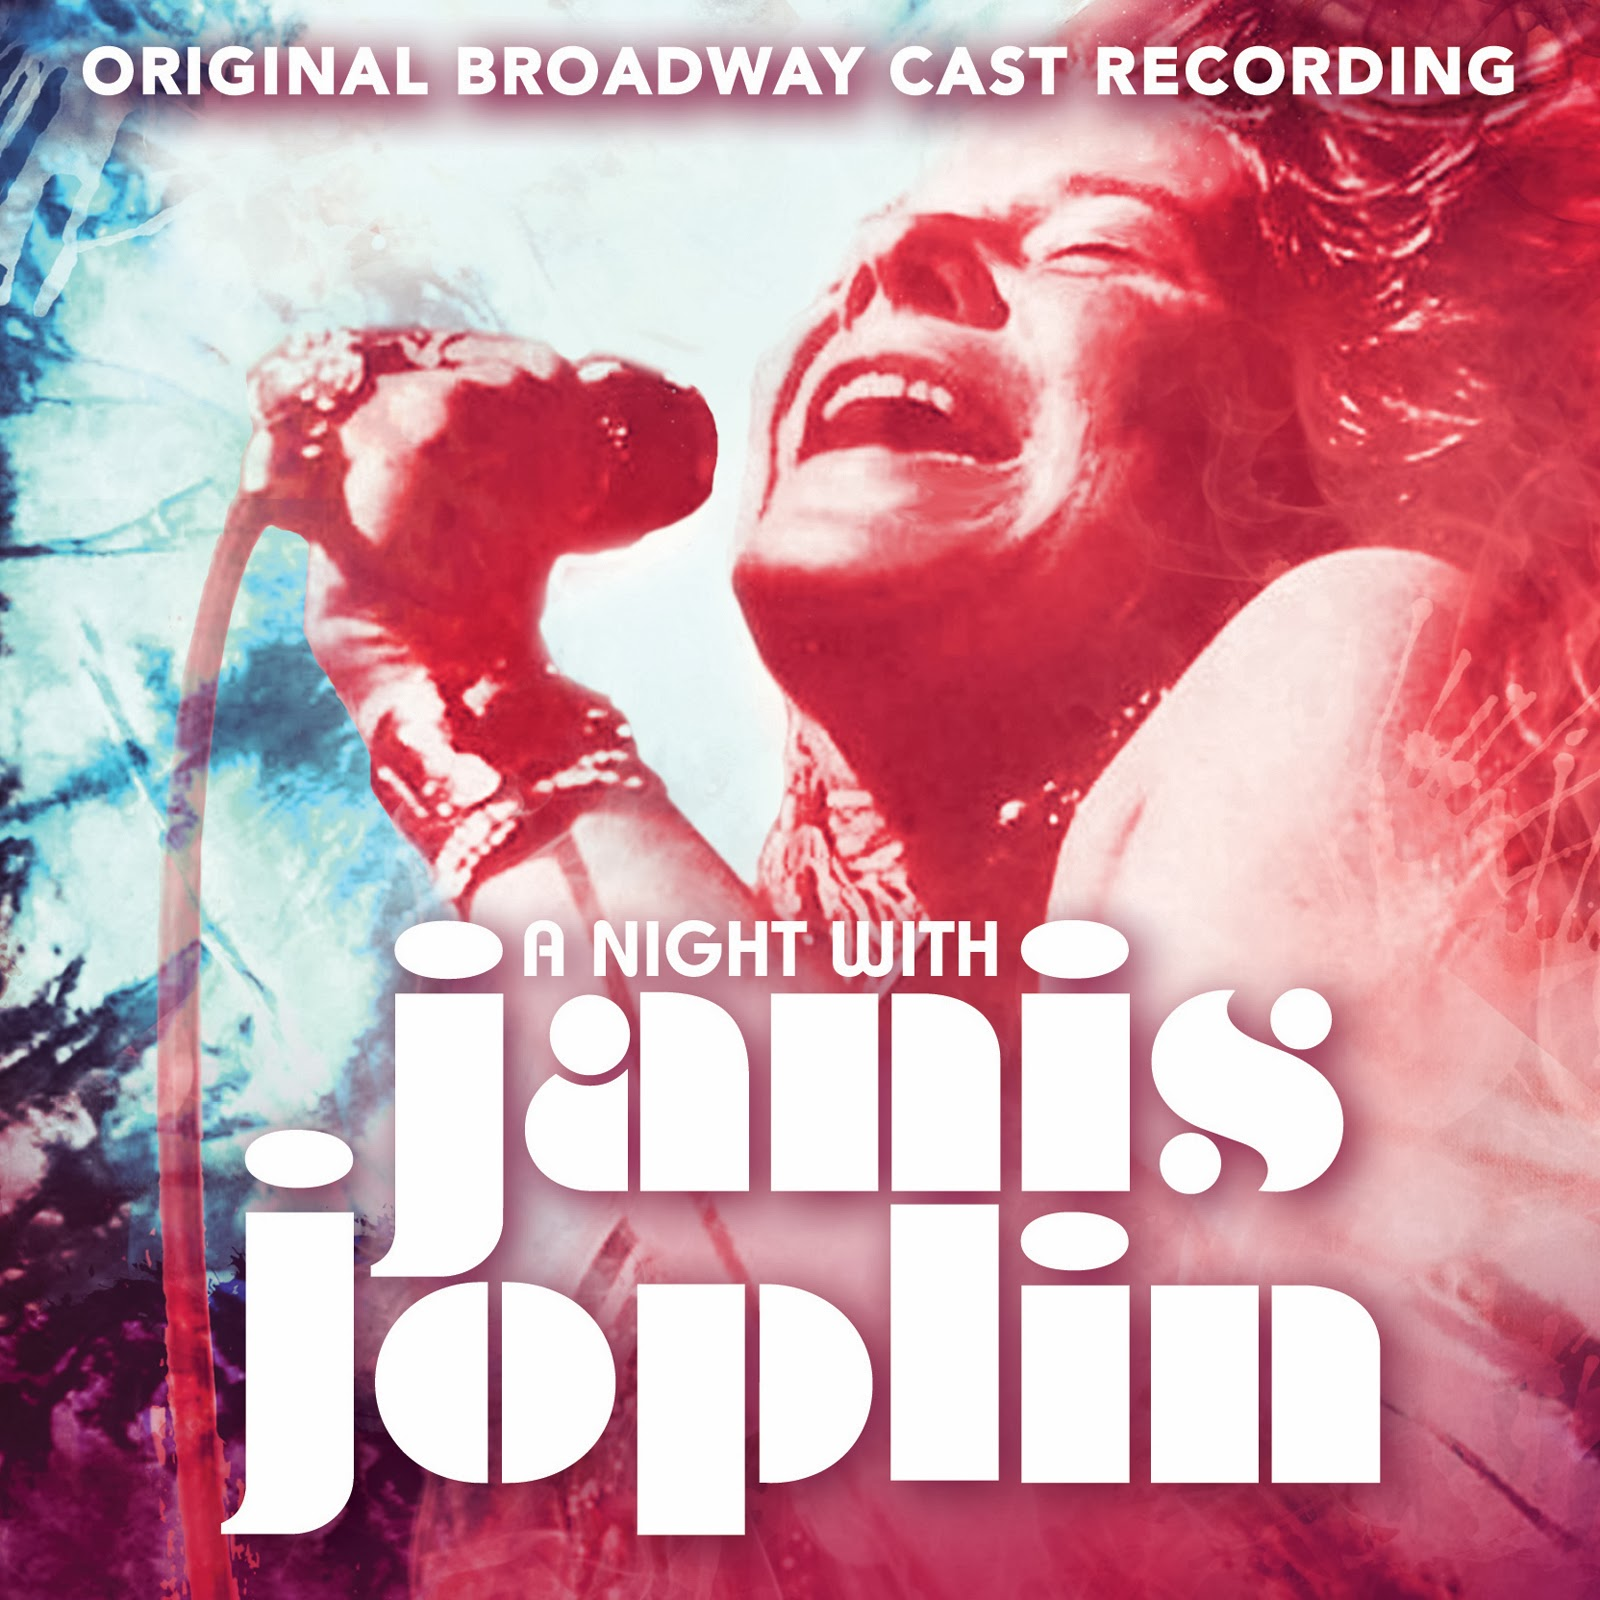 ORIGINAL BROADWAY CAST ALBUM